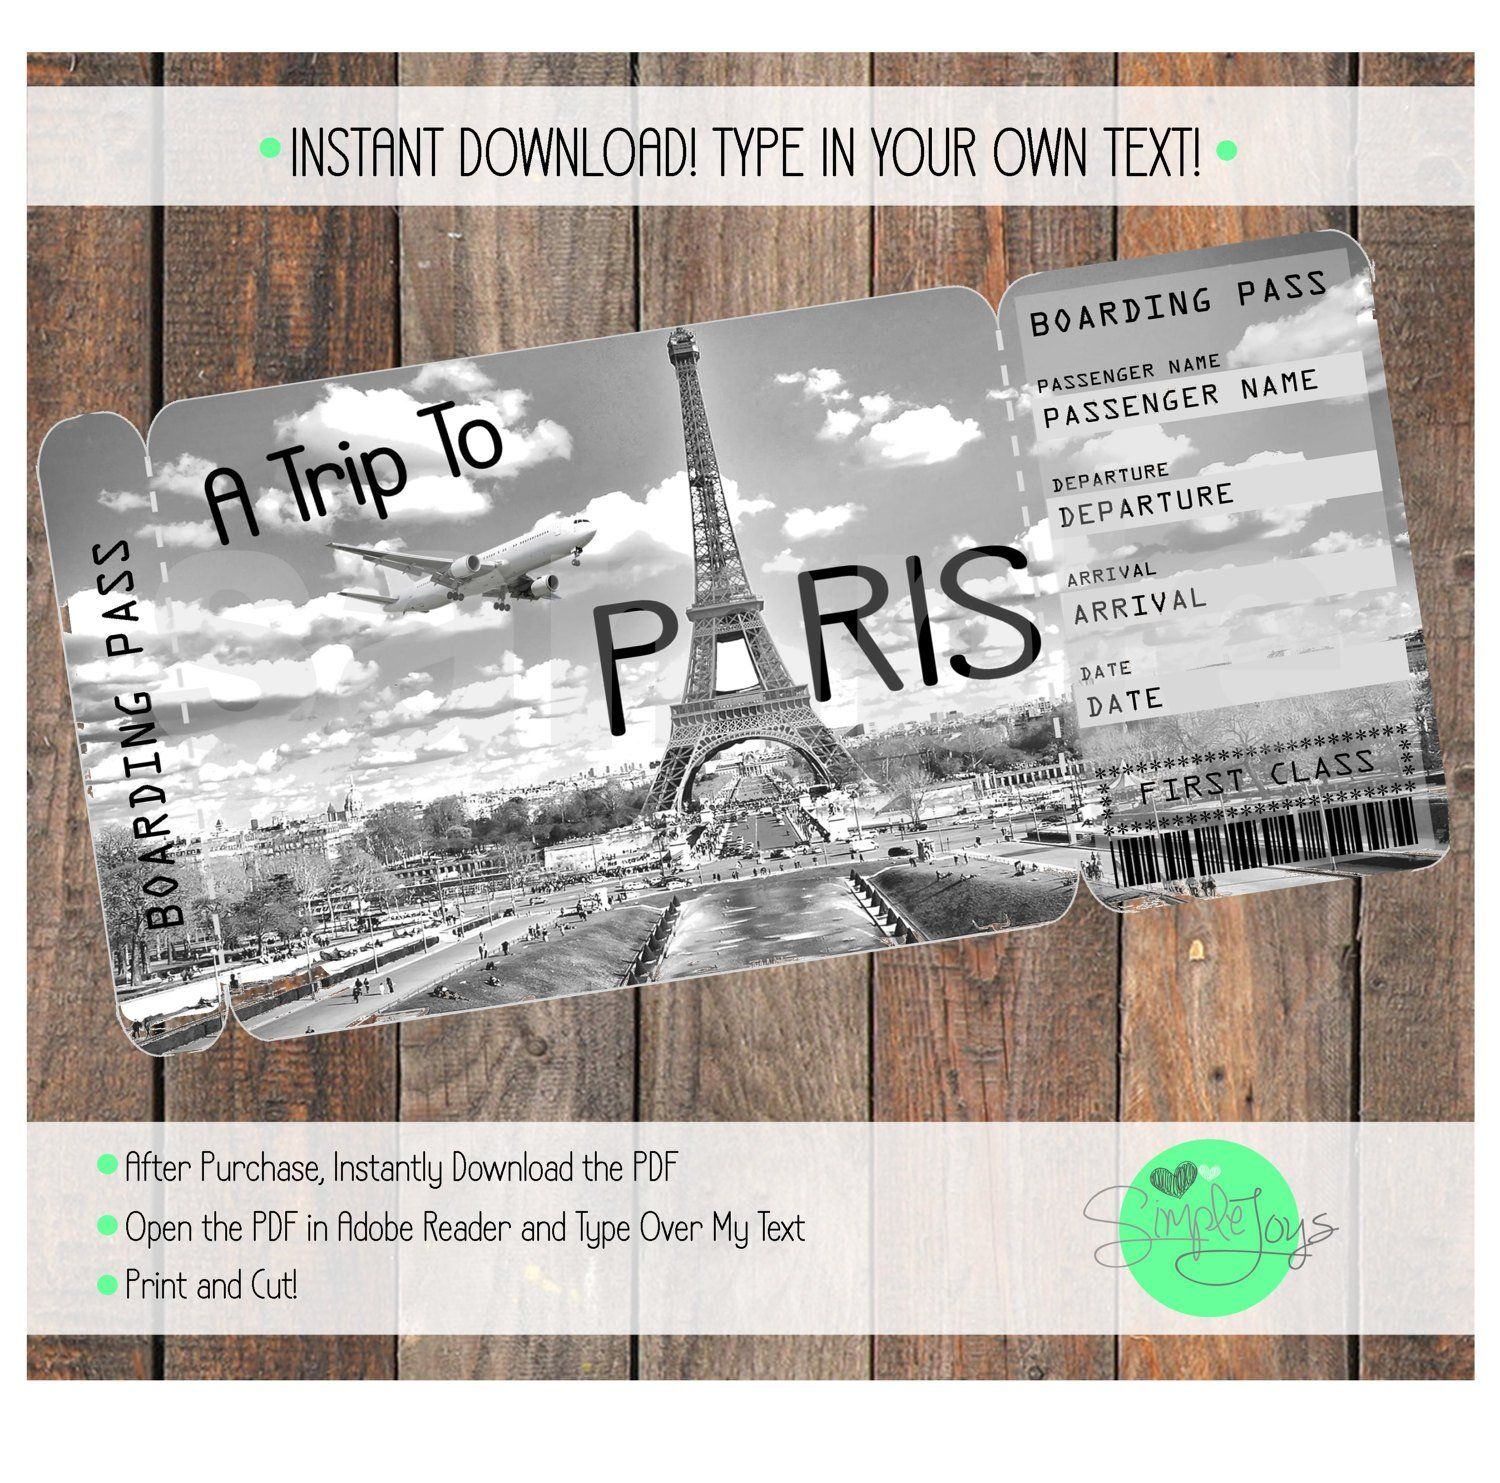 Printable Ticket To Paris Boarding Pass Surprise Vacation Etsy In 2021 Printable Tickets Boarding Pass Template Surprise Vacation